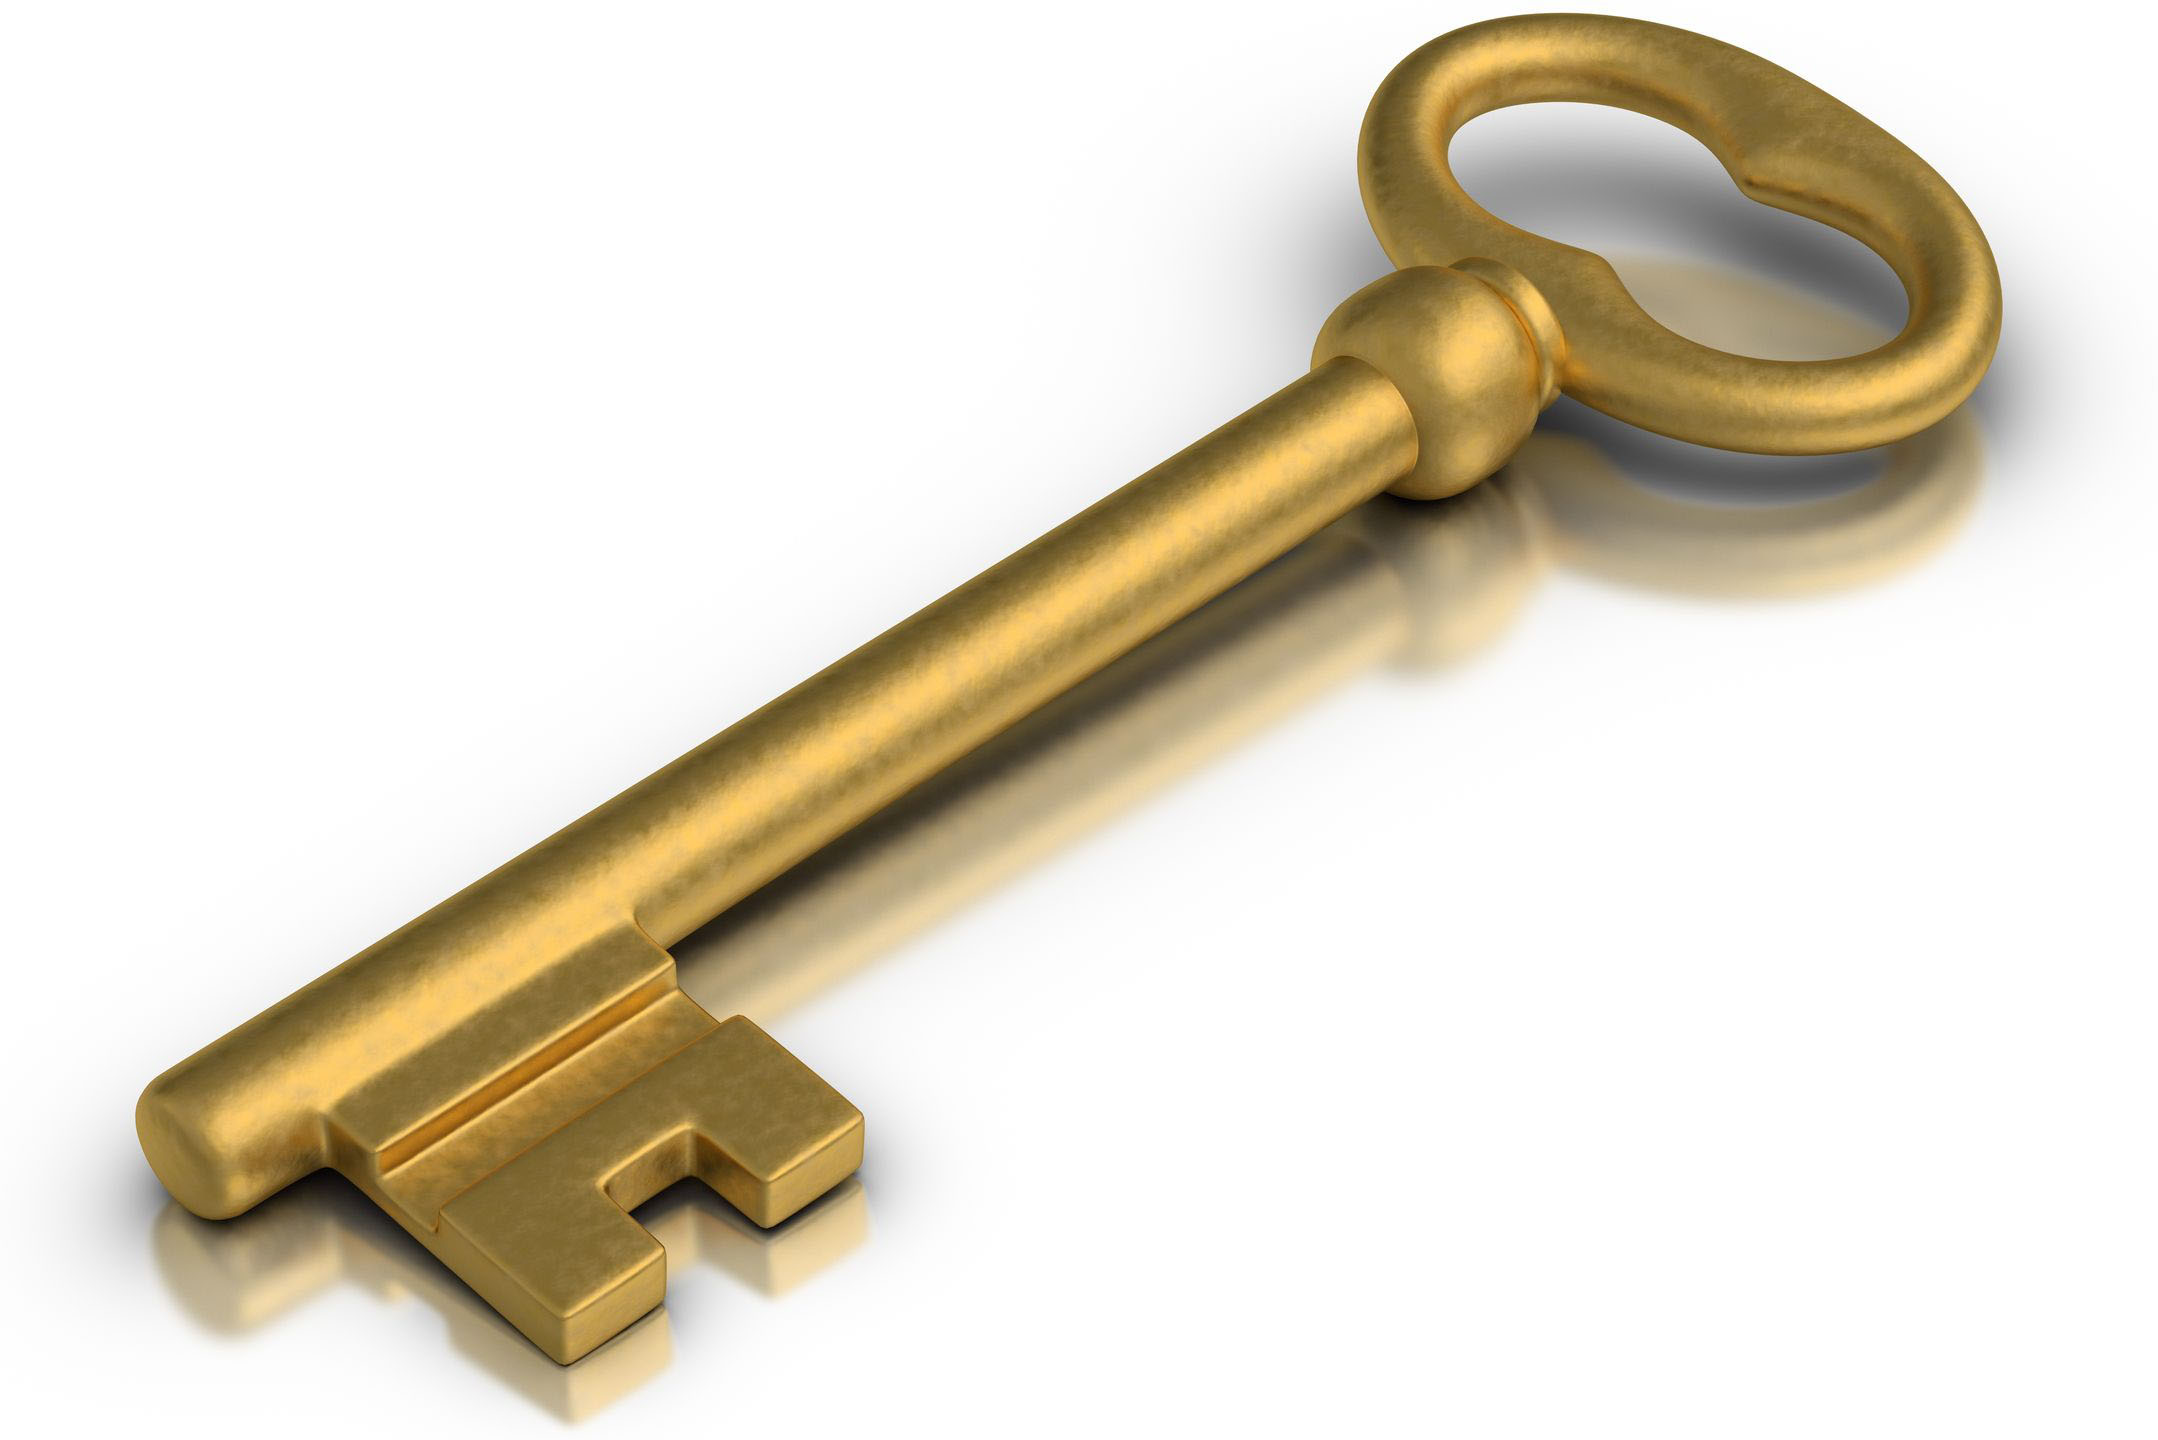 Golden Key - LIBERTY SECURITY PRIVACY SAFETY FREE WILL - UNIVERSAL SPENDING AUTHORITY